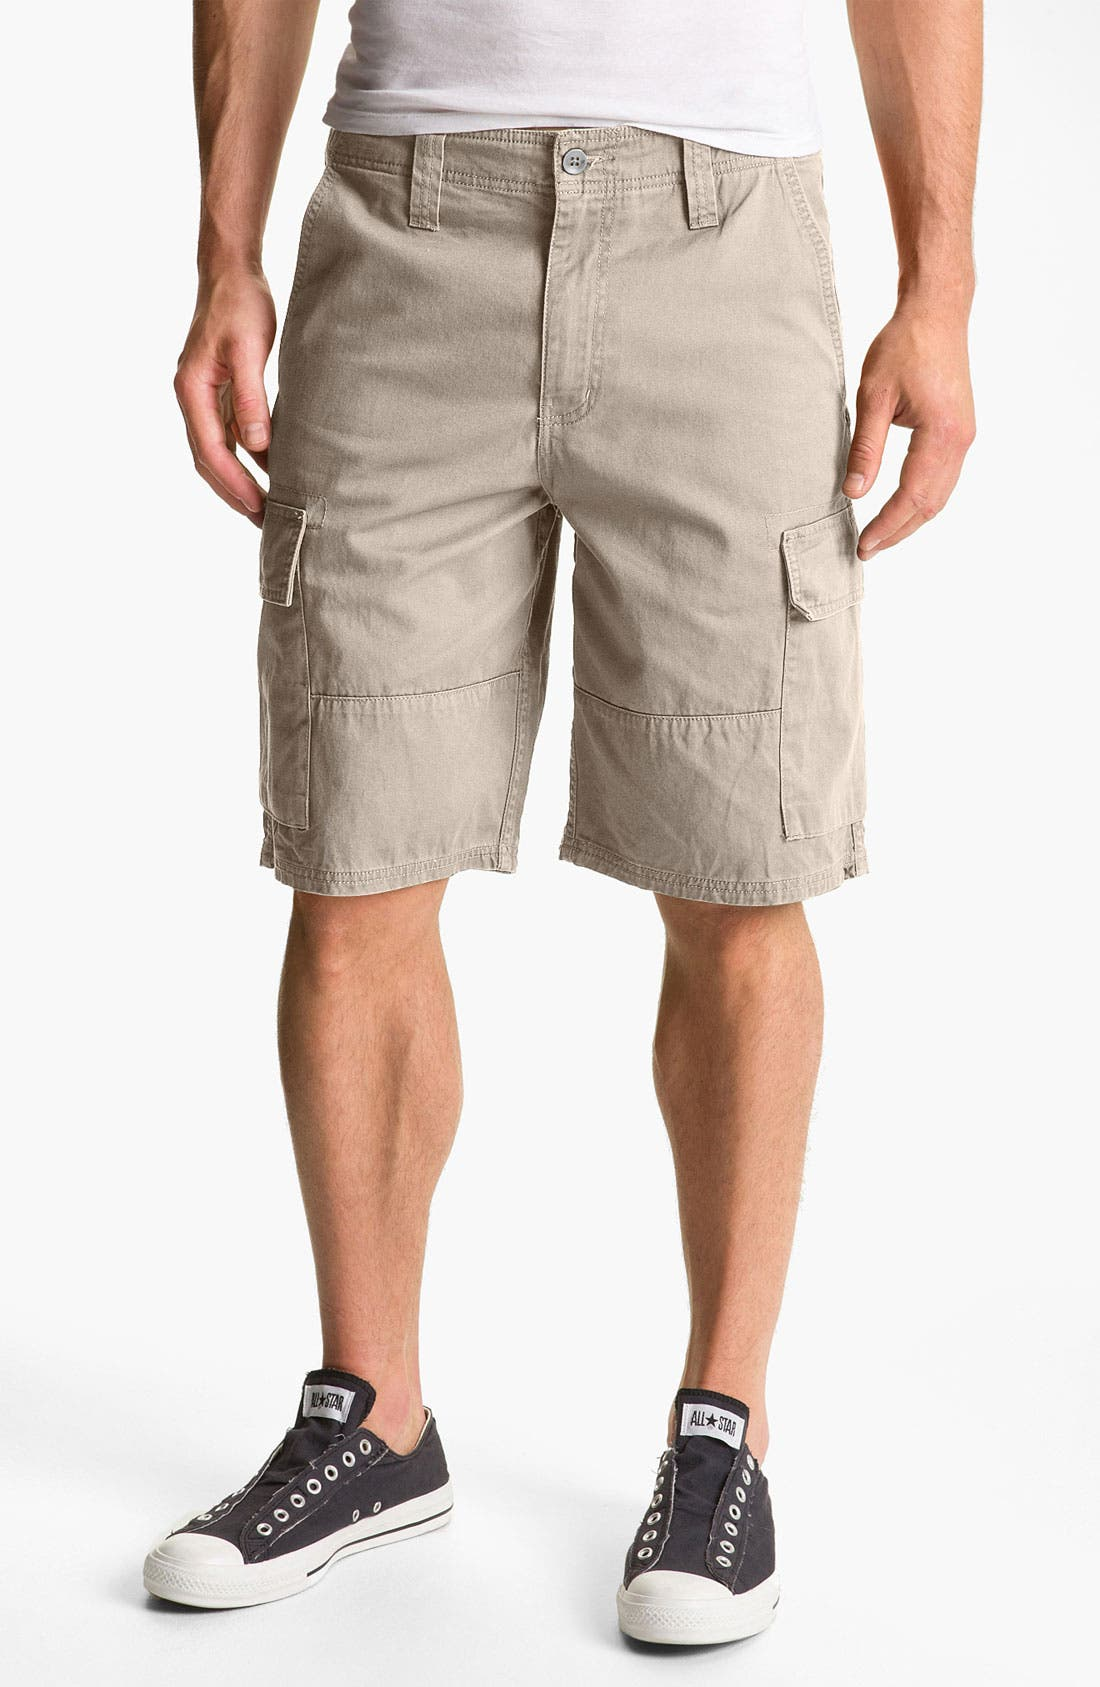 Alternate Image 1 Selected - Hurley 'Commander' Cargo Shorts